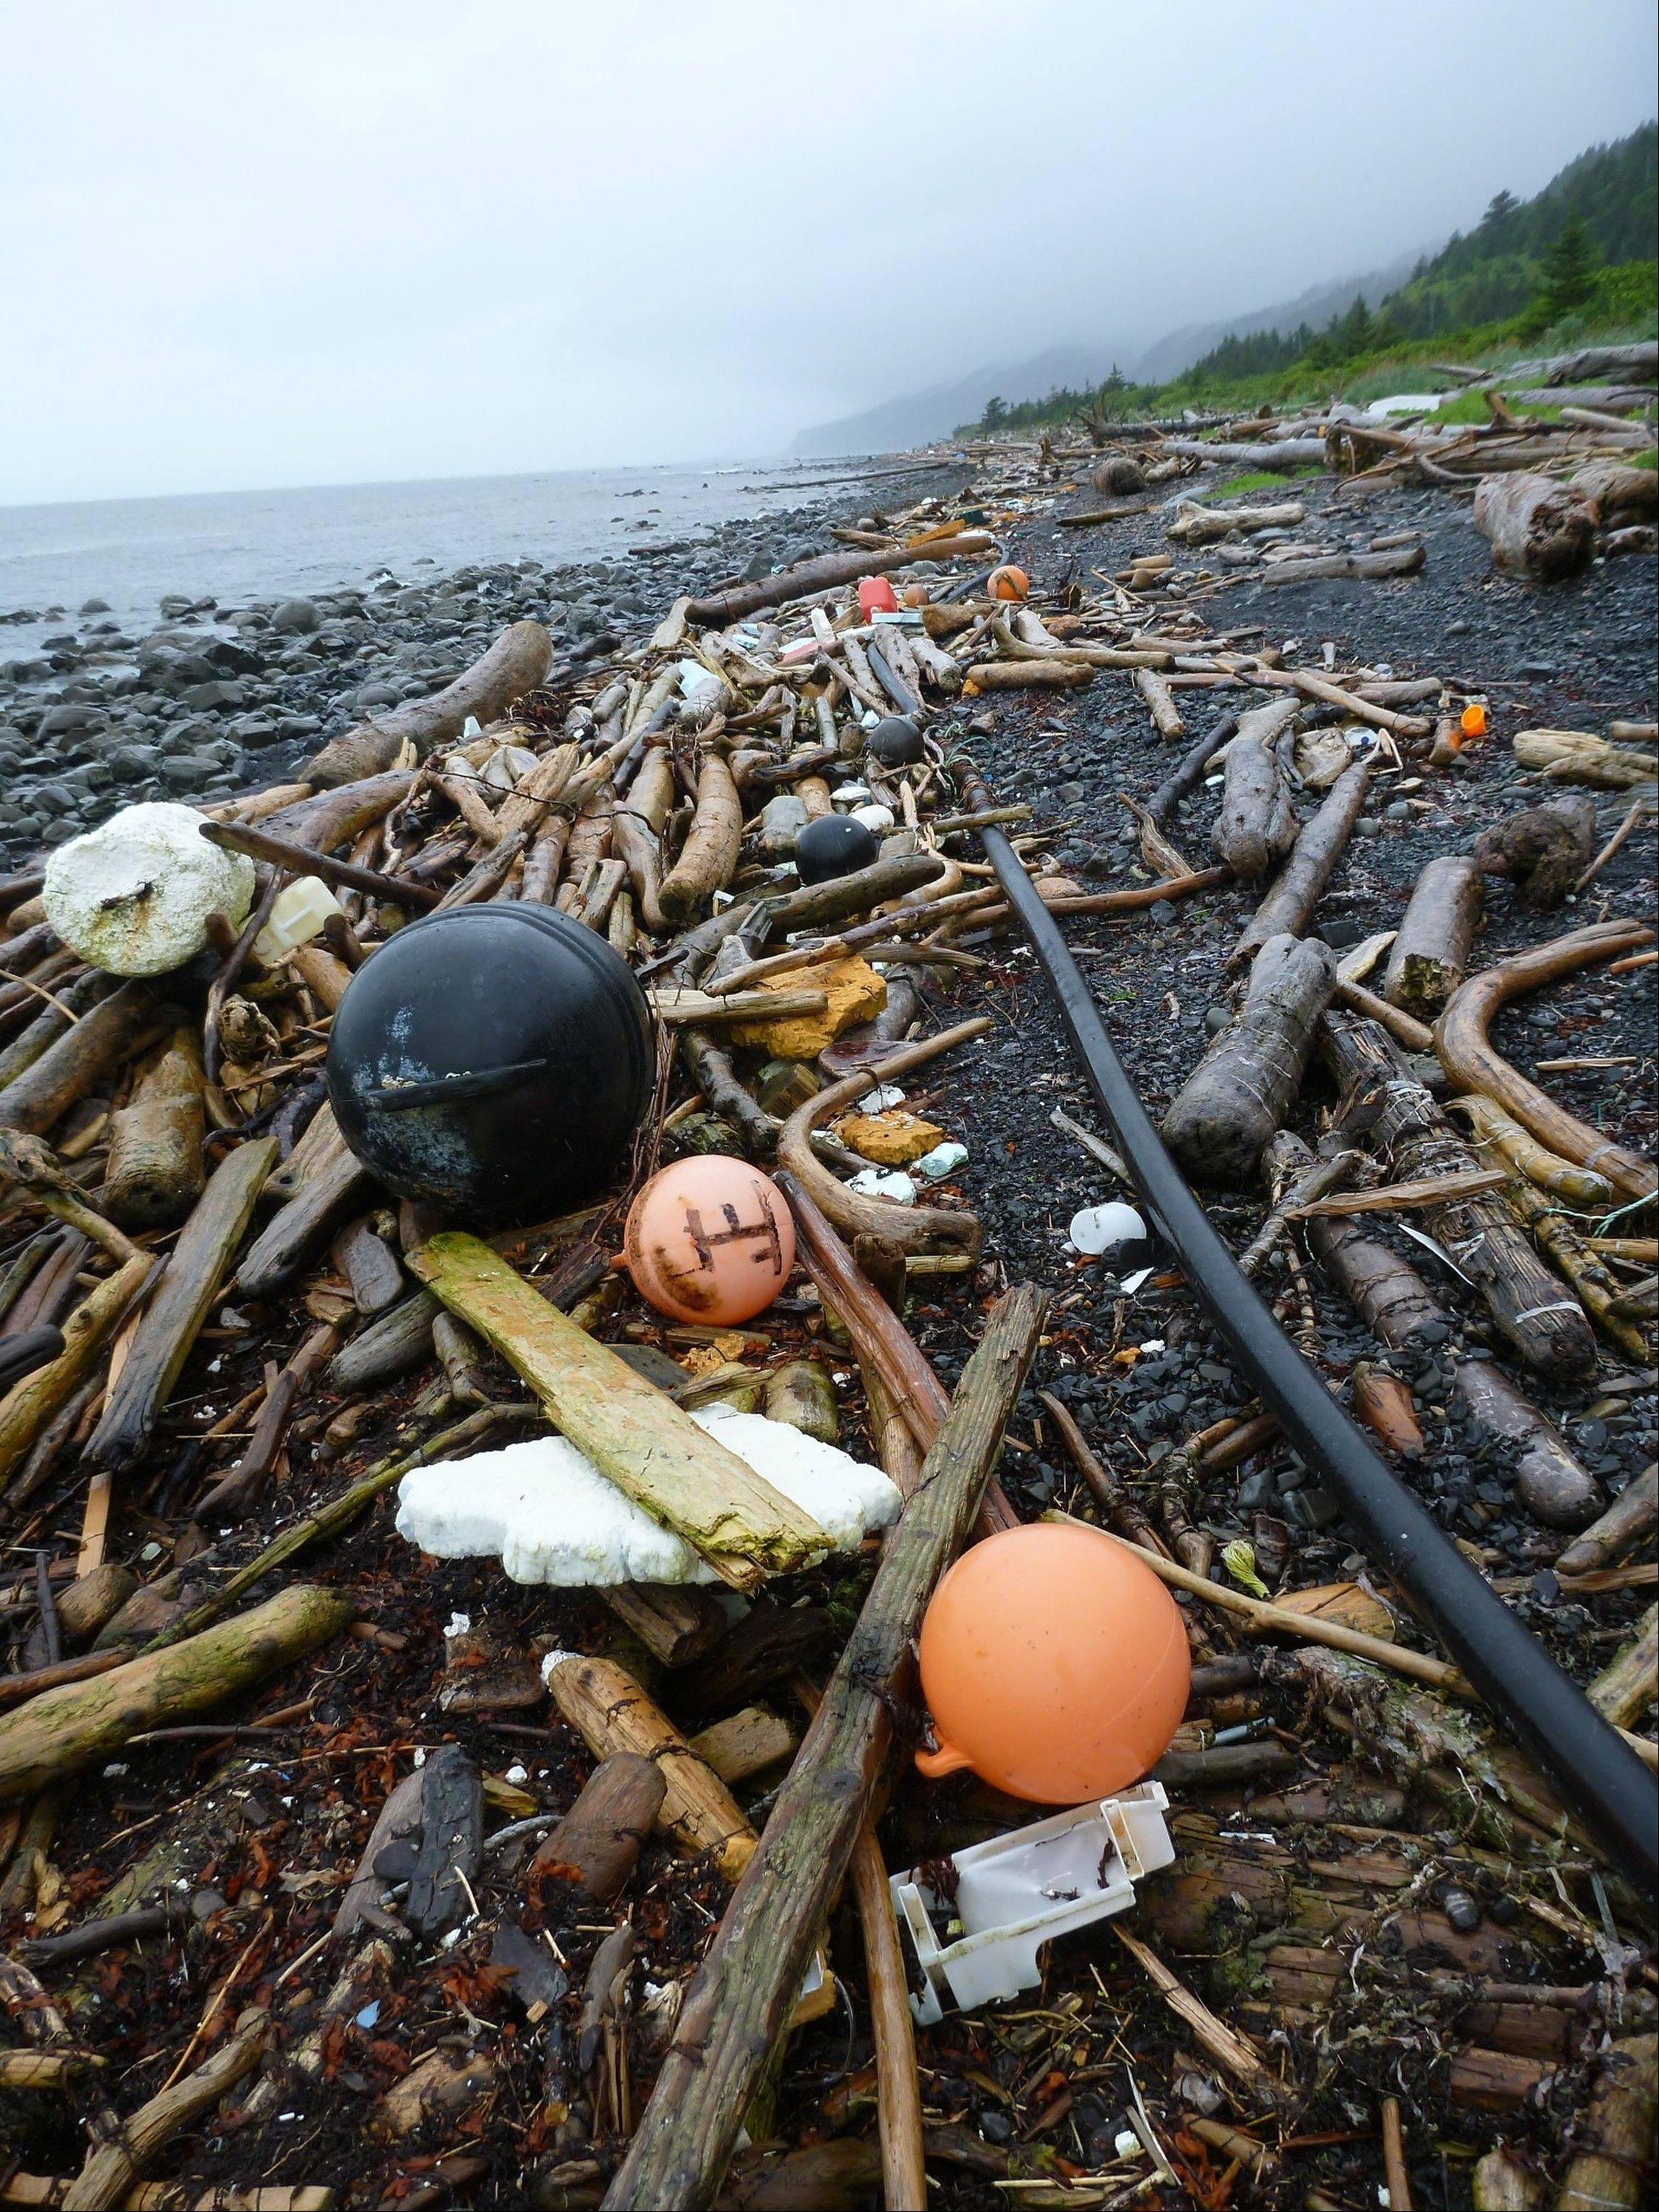 Associated PressBuoys, foam and other debris are strewn about a beach on Kayak Island, Alaska. The West Coast is anticipating more debris from the 2011 Japanese tsunami to wash ashore this winter. Scientists expect the bulk of the tsunami debris to end up in the Pacific Northwest.